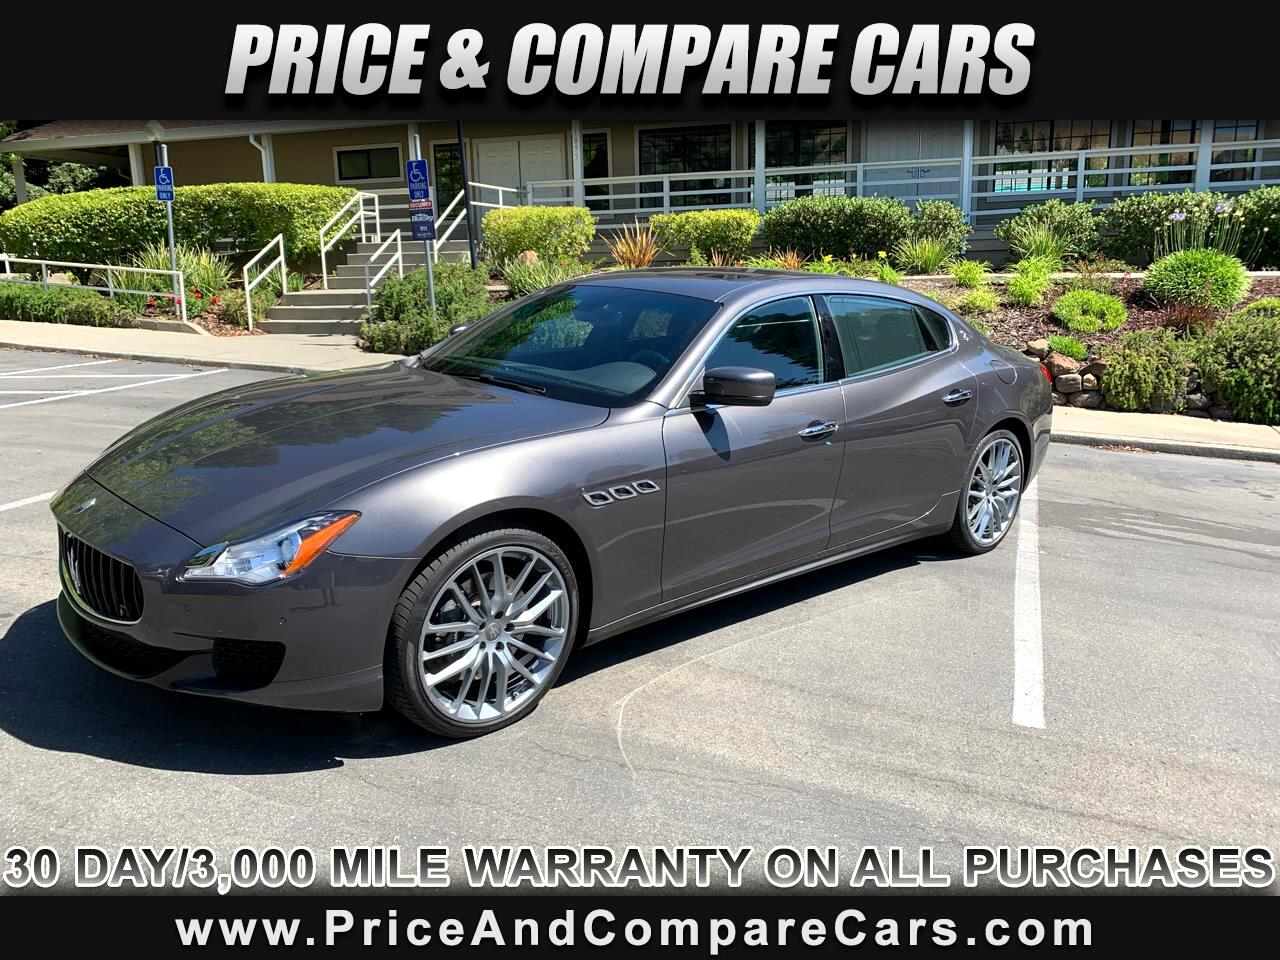 2016 Maserati Quattroporte 4 DR SEDAN QUATTROPORTE S 404 HP OVER 110K NEW